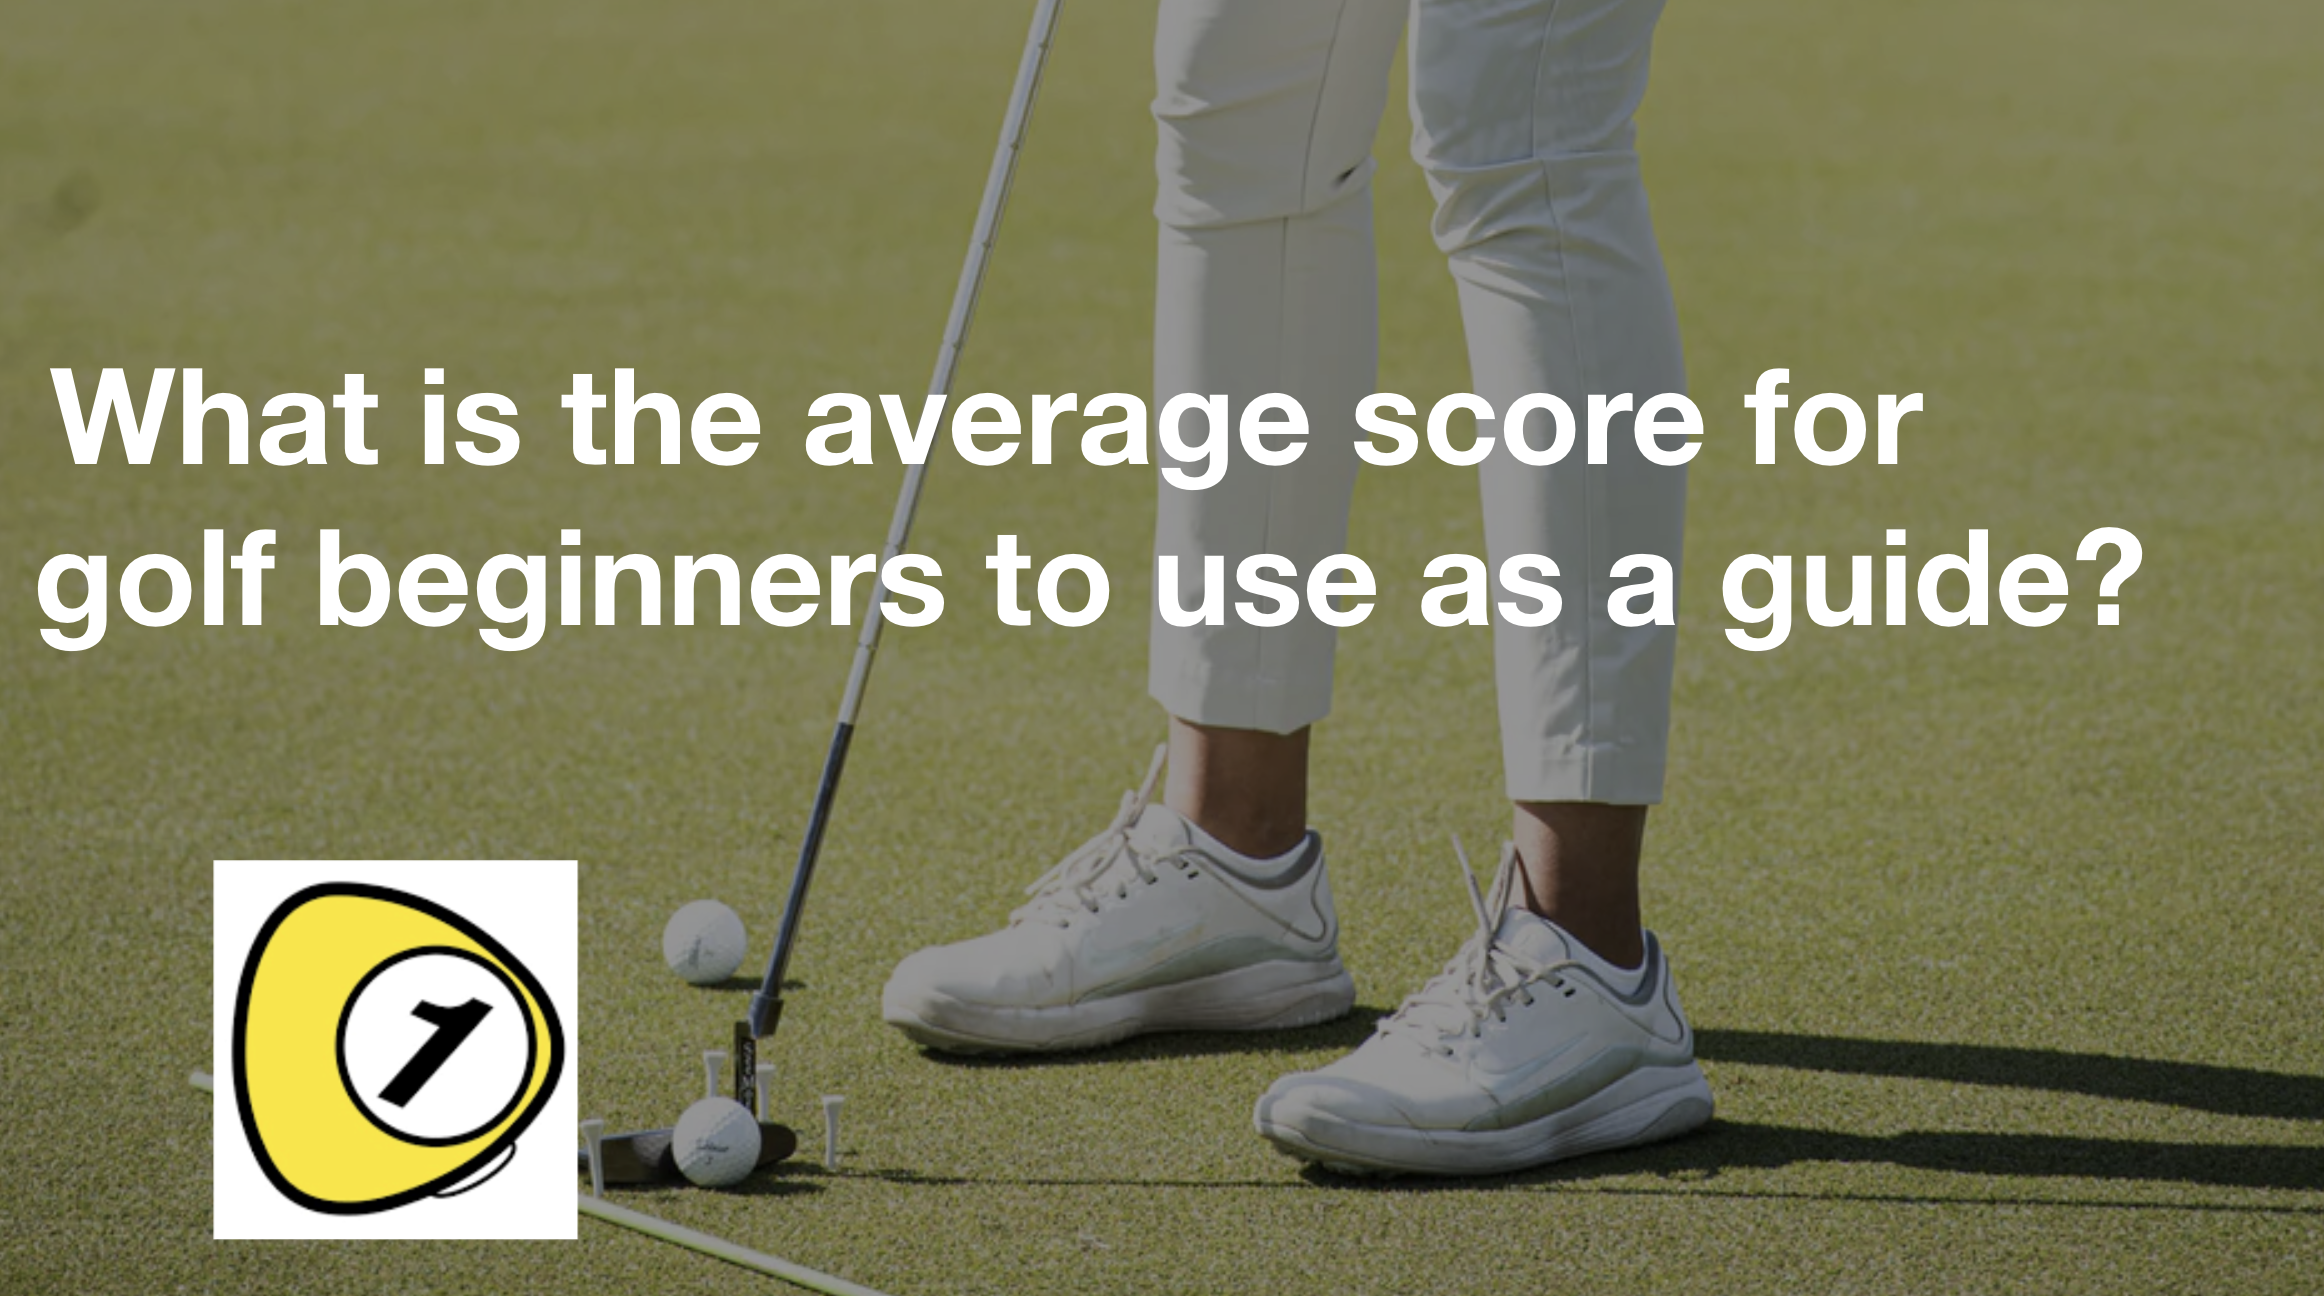 golfScoreCounterDotcom_What is the average score for golf beginners to use as a guide?